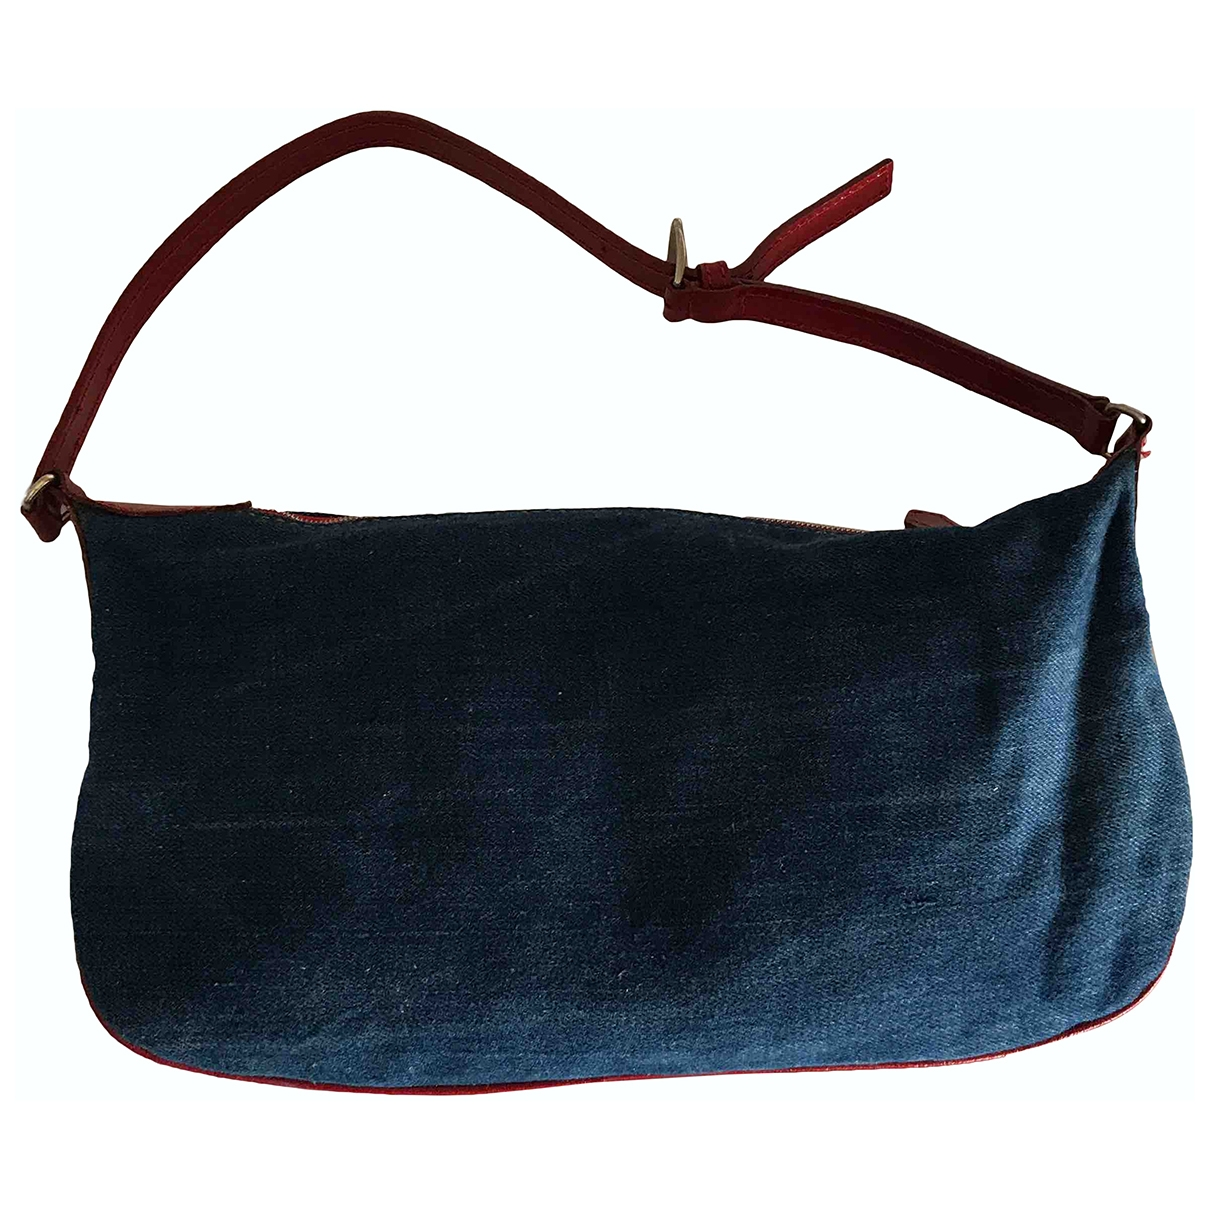 Valentino Garavani \N Clutch in  Blau Denim - Jeans